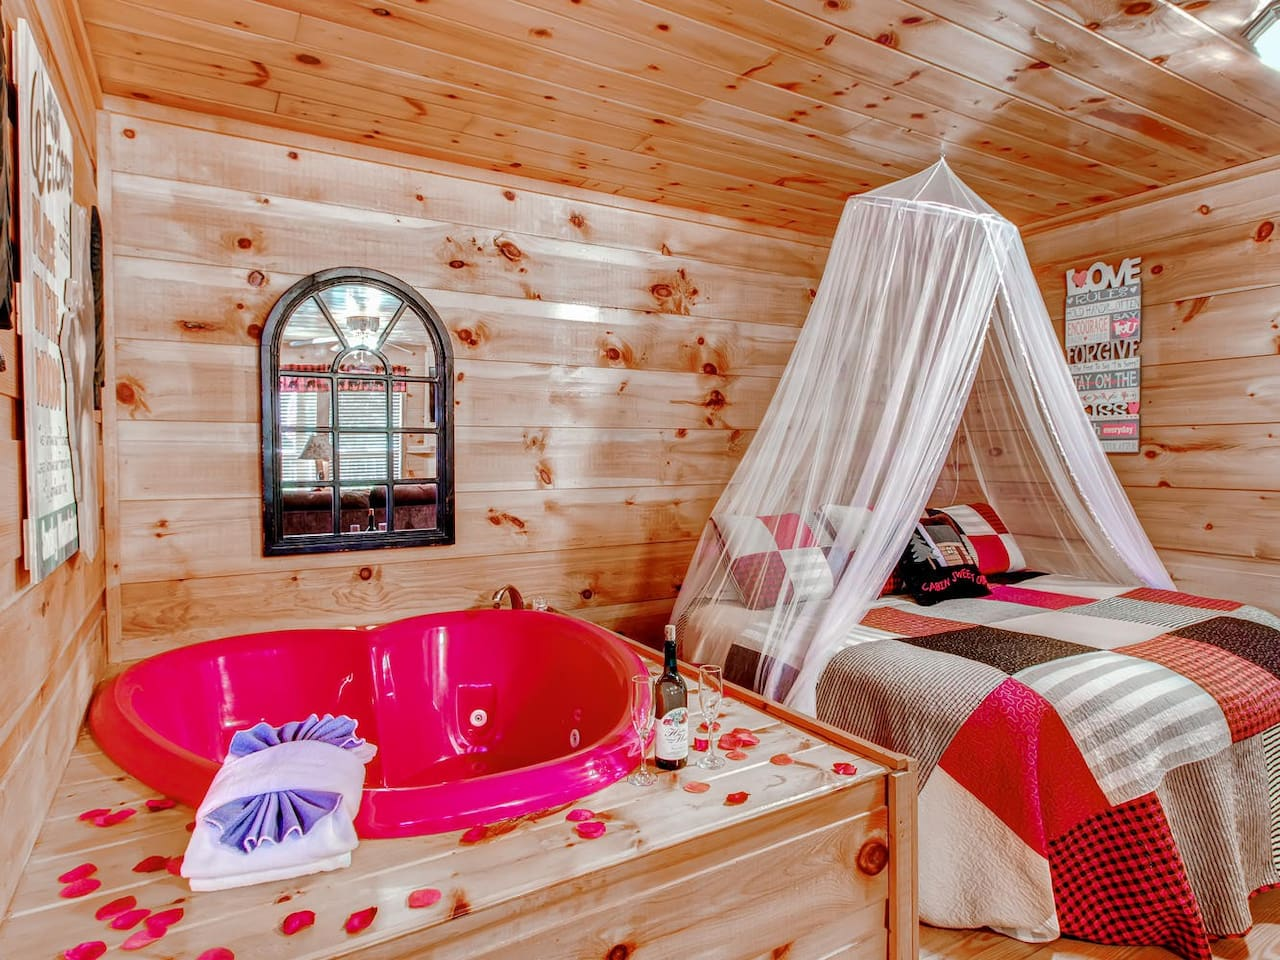 King size round bed with red heart shaped jacuzzi